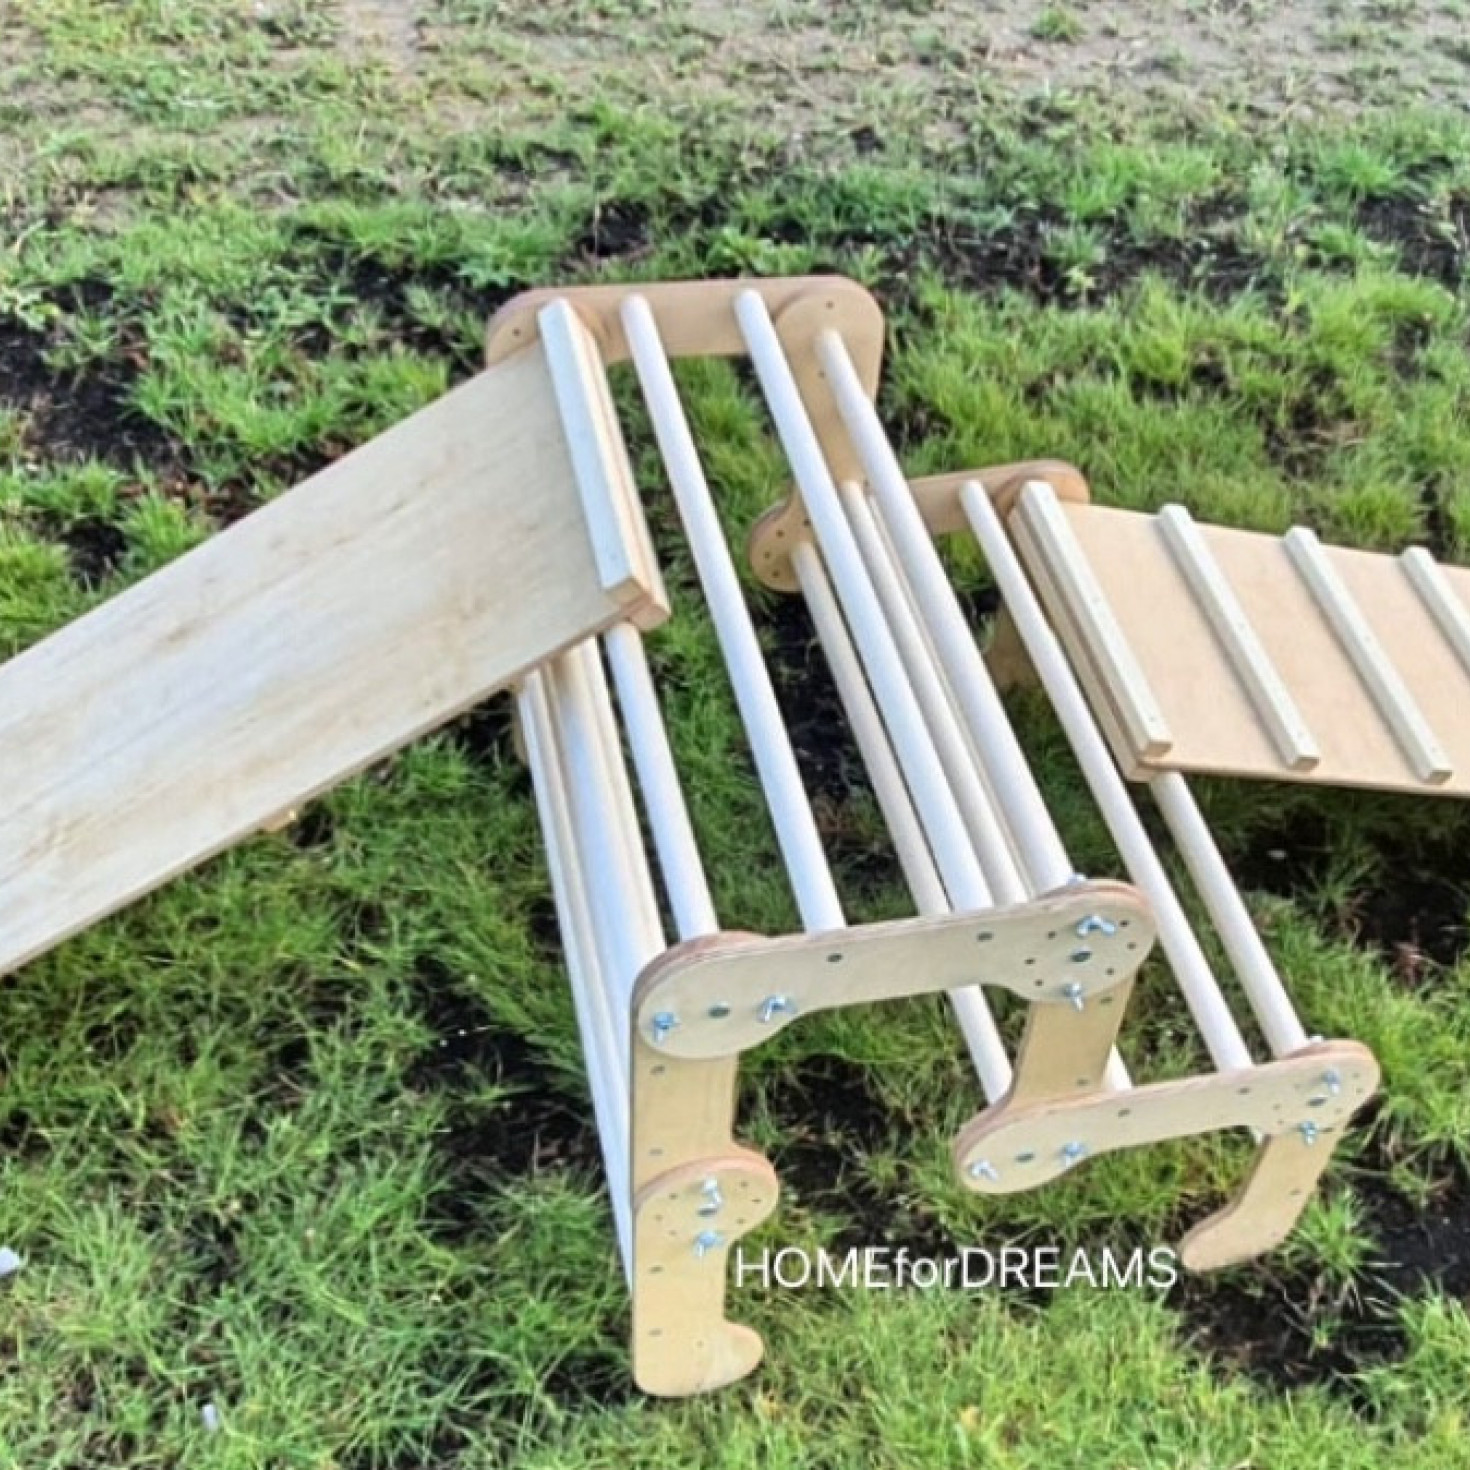 L-shaped wooden climber with ladder board and slide